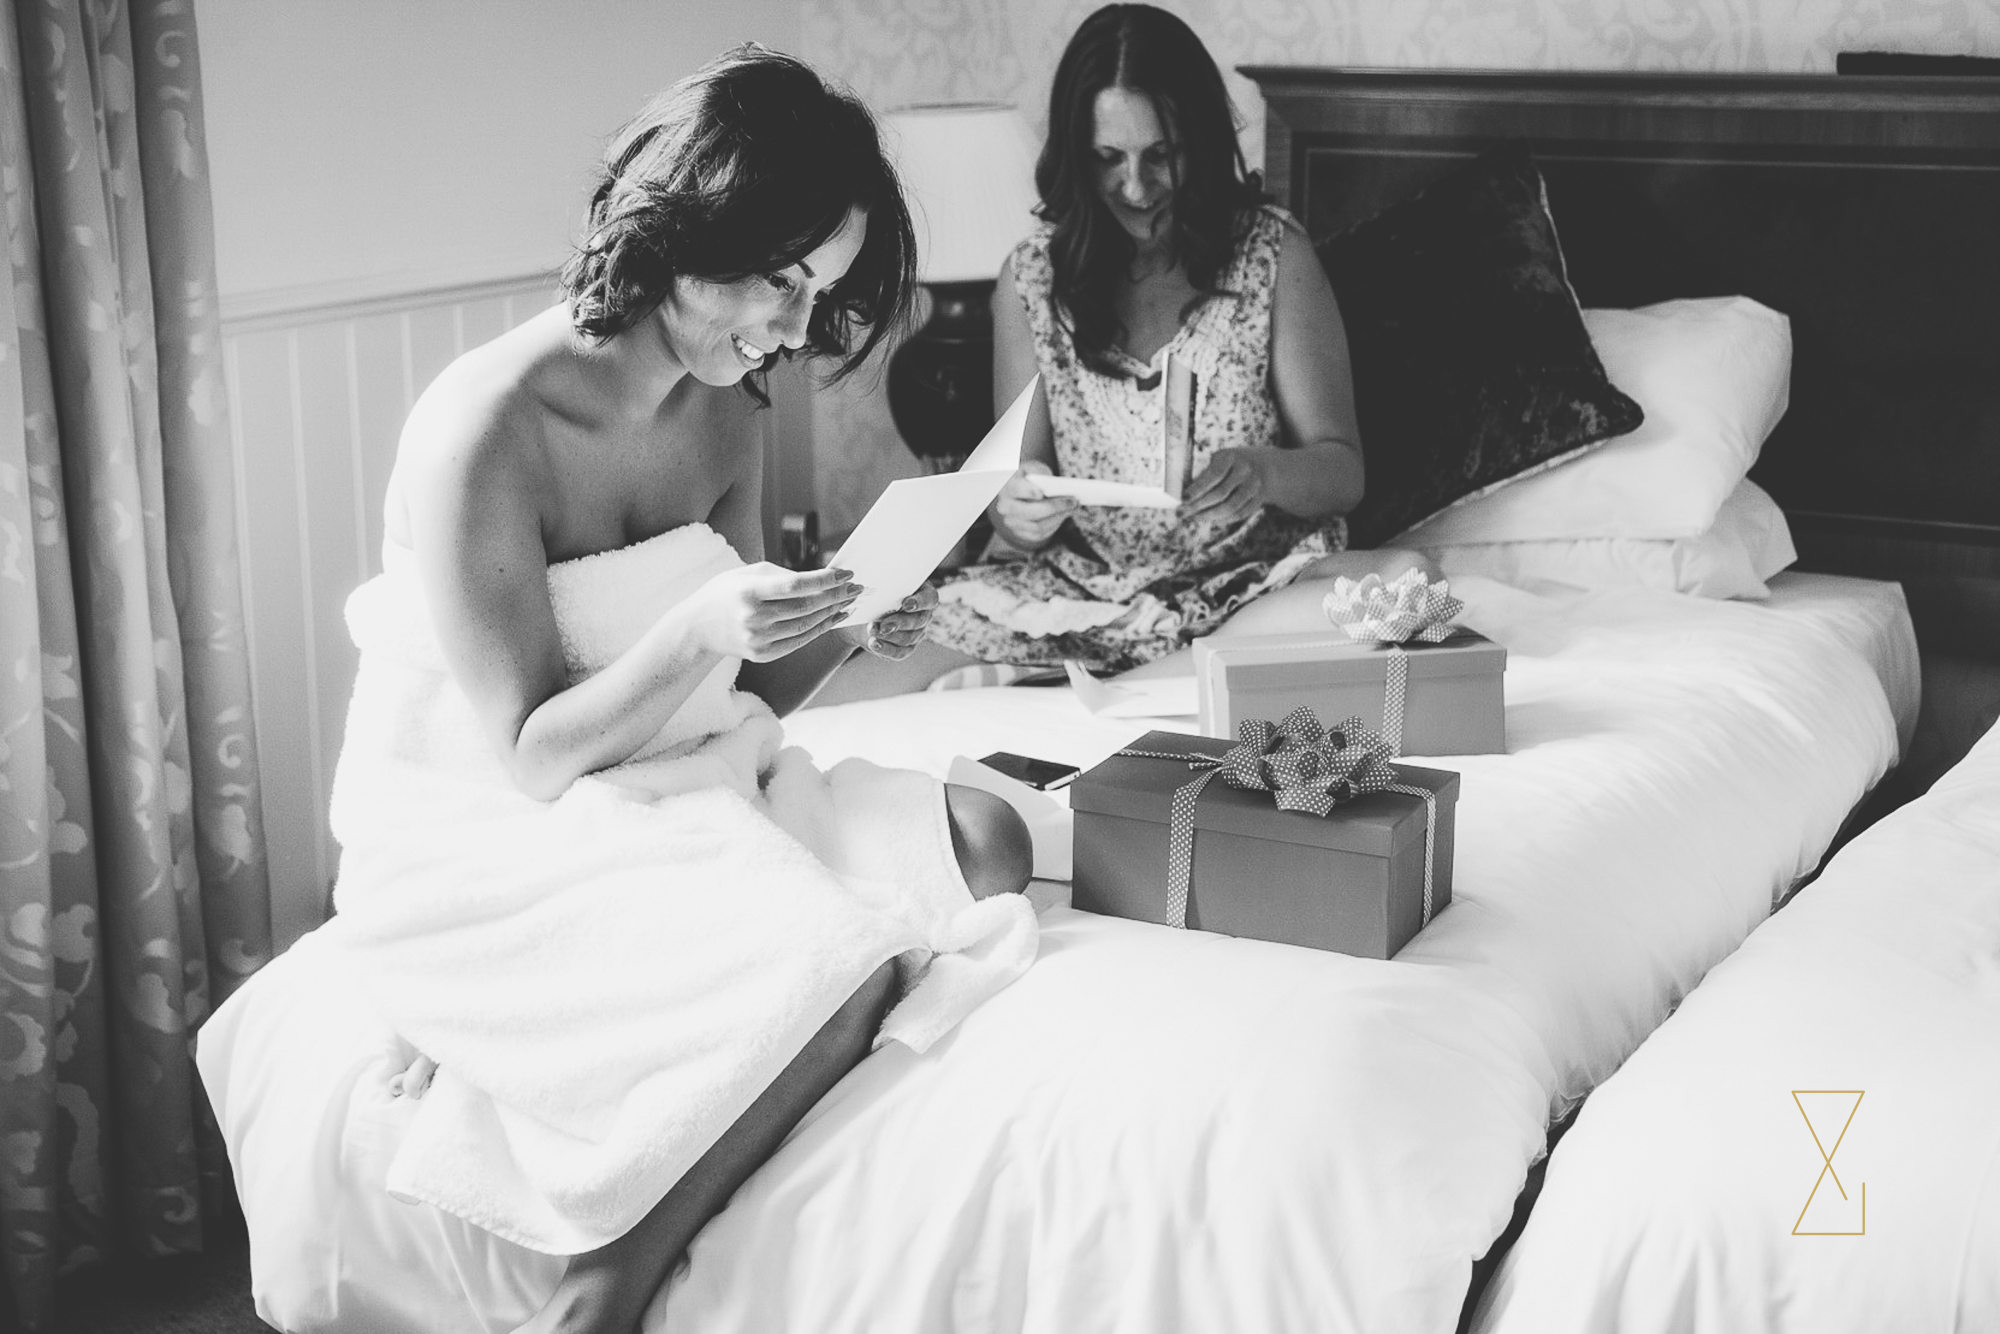 Bridesmaids open gifts from the bride, Evans & Evans wedding photography